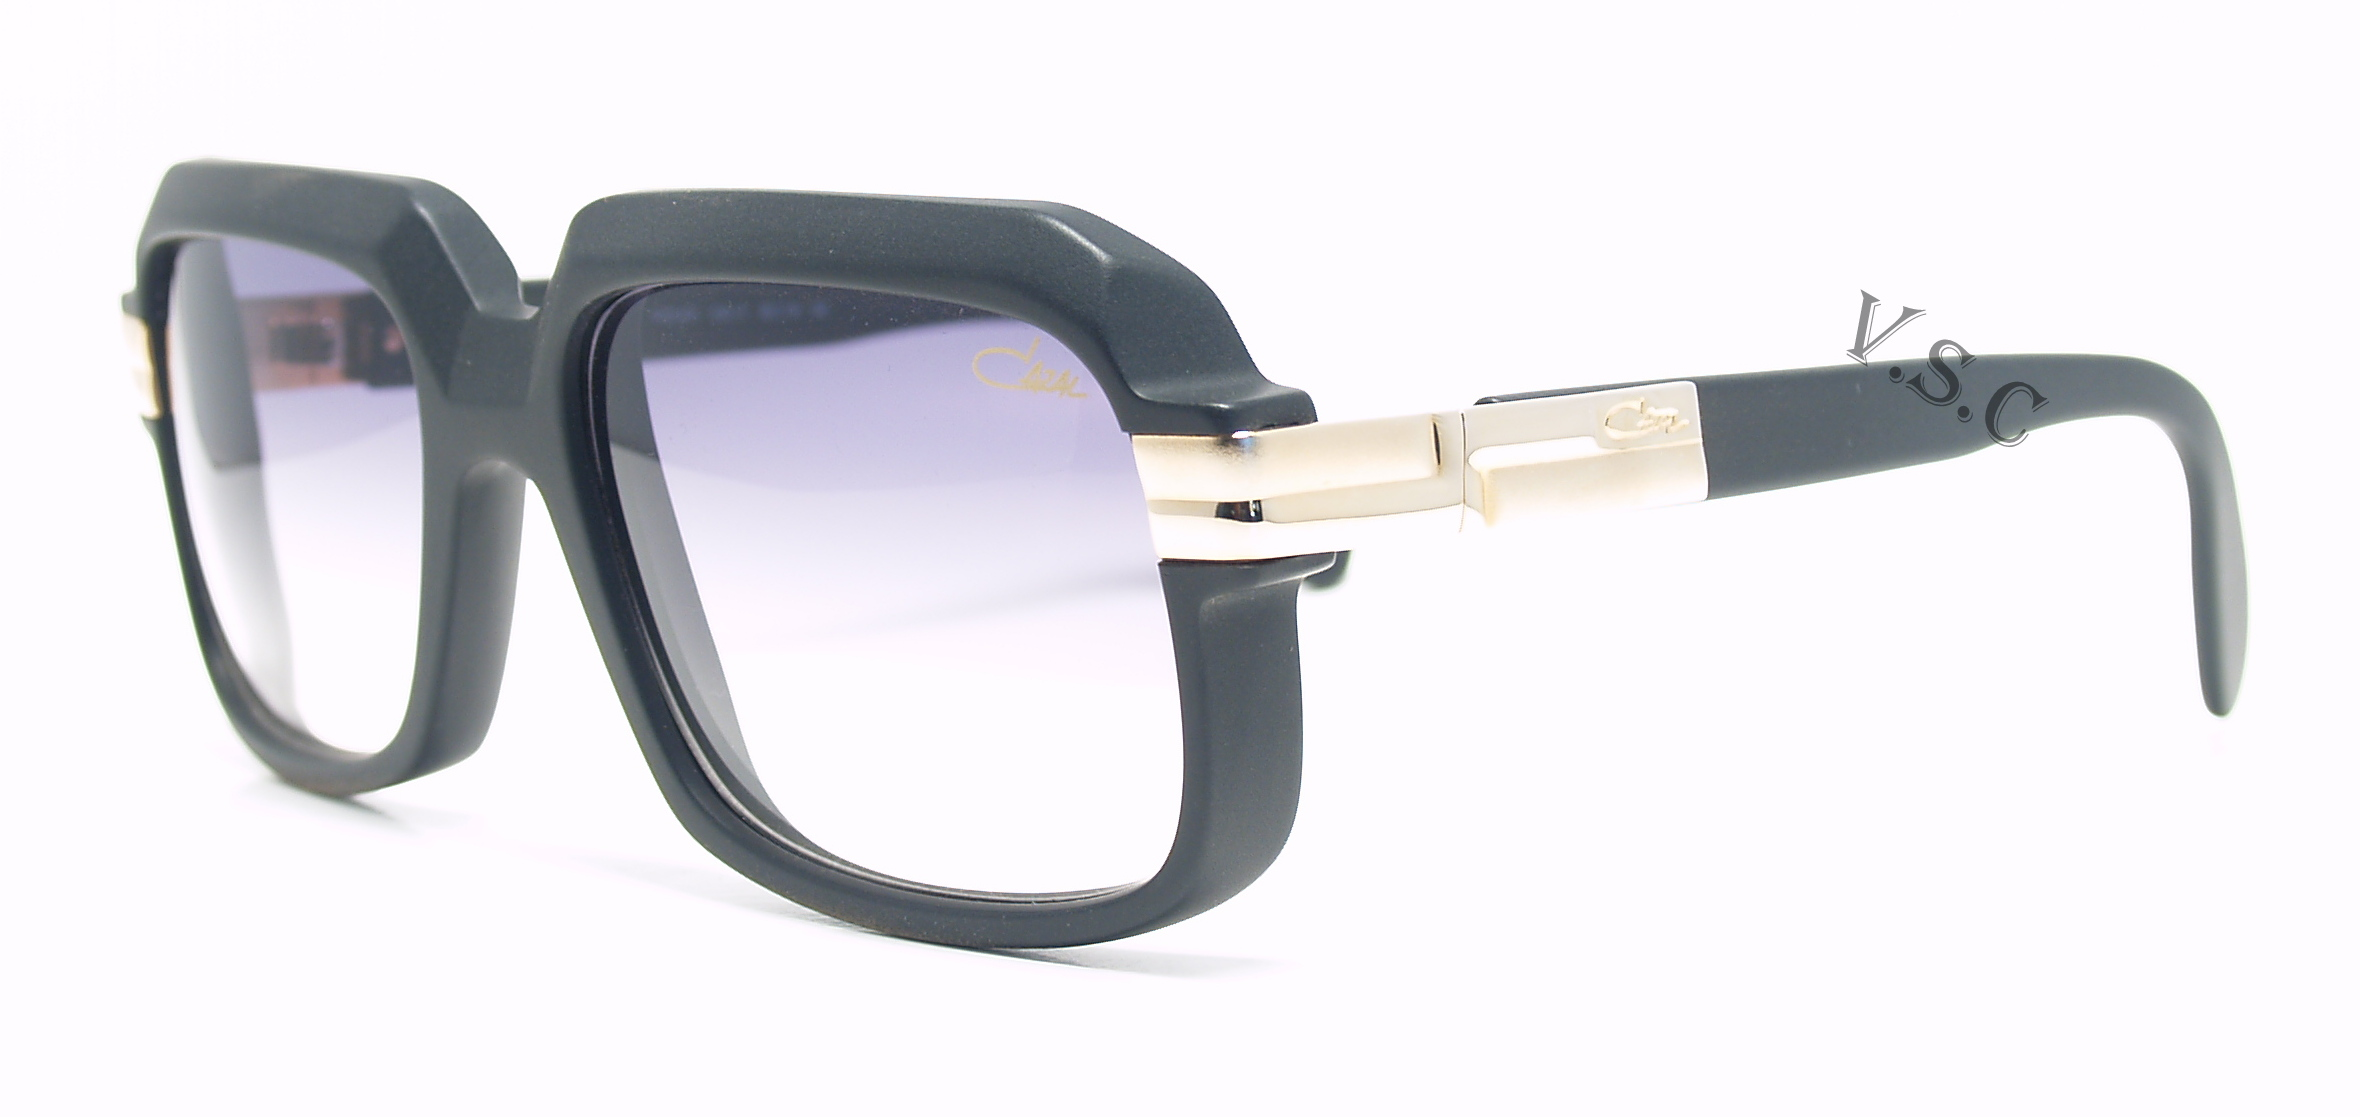 0afa15d40b3 Cazal Sunglasses For Cheap